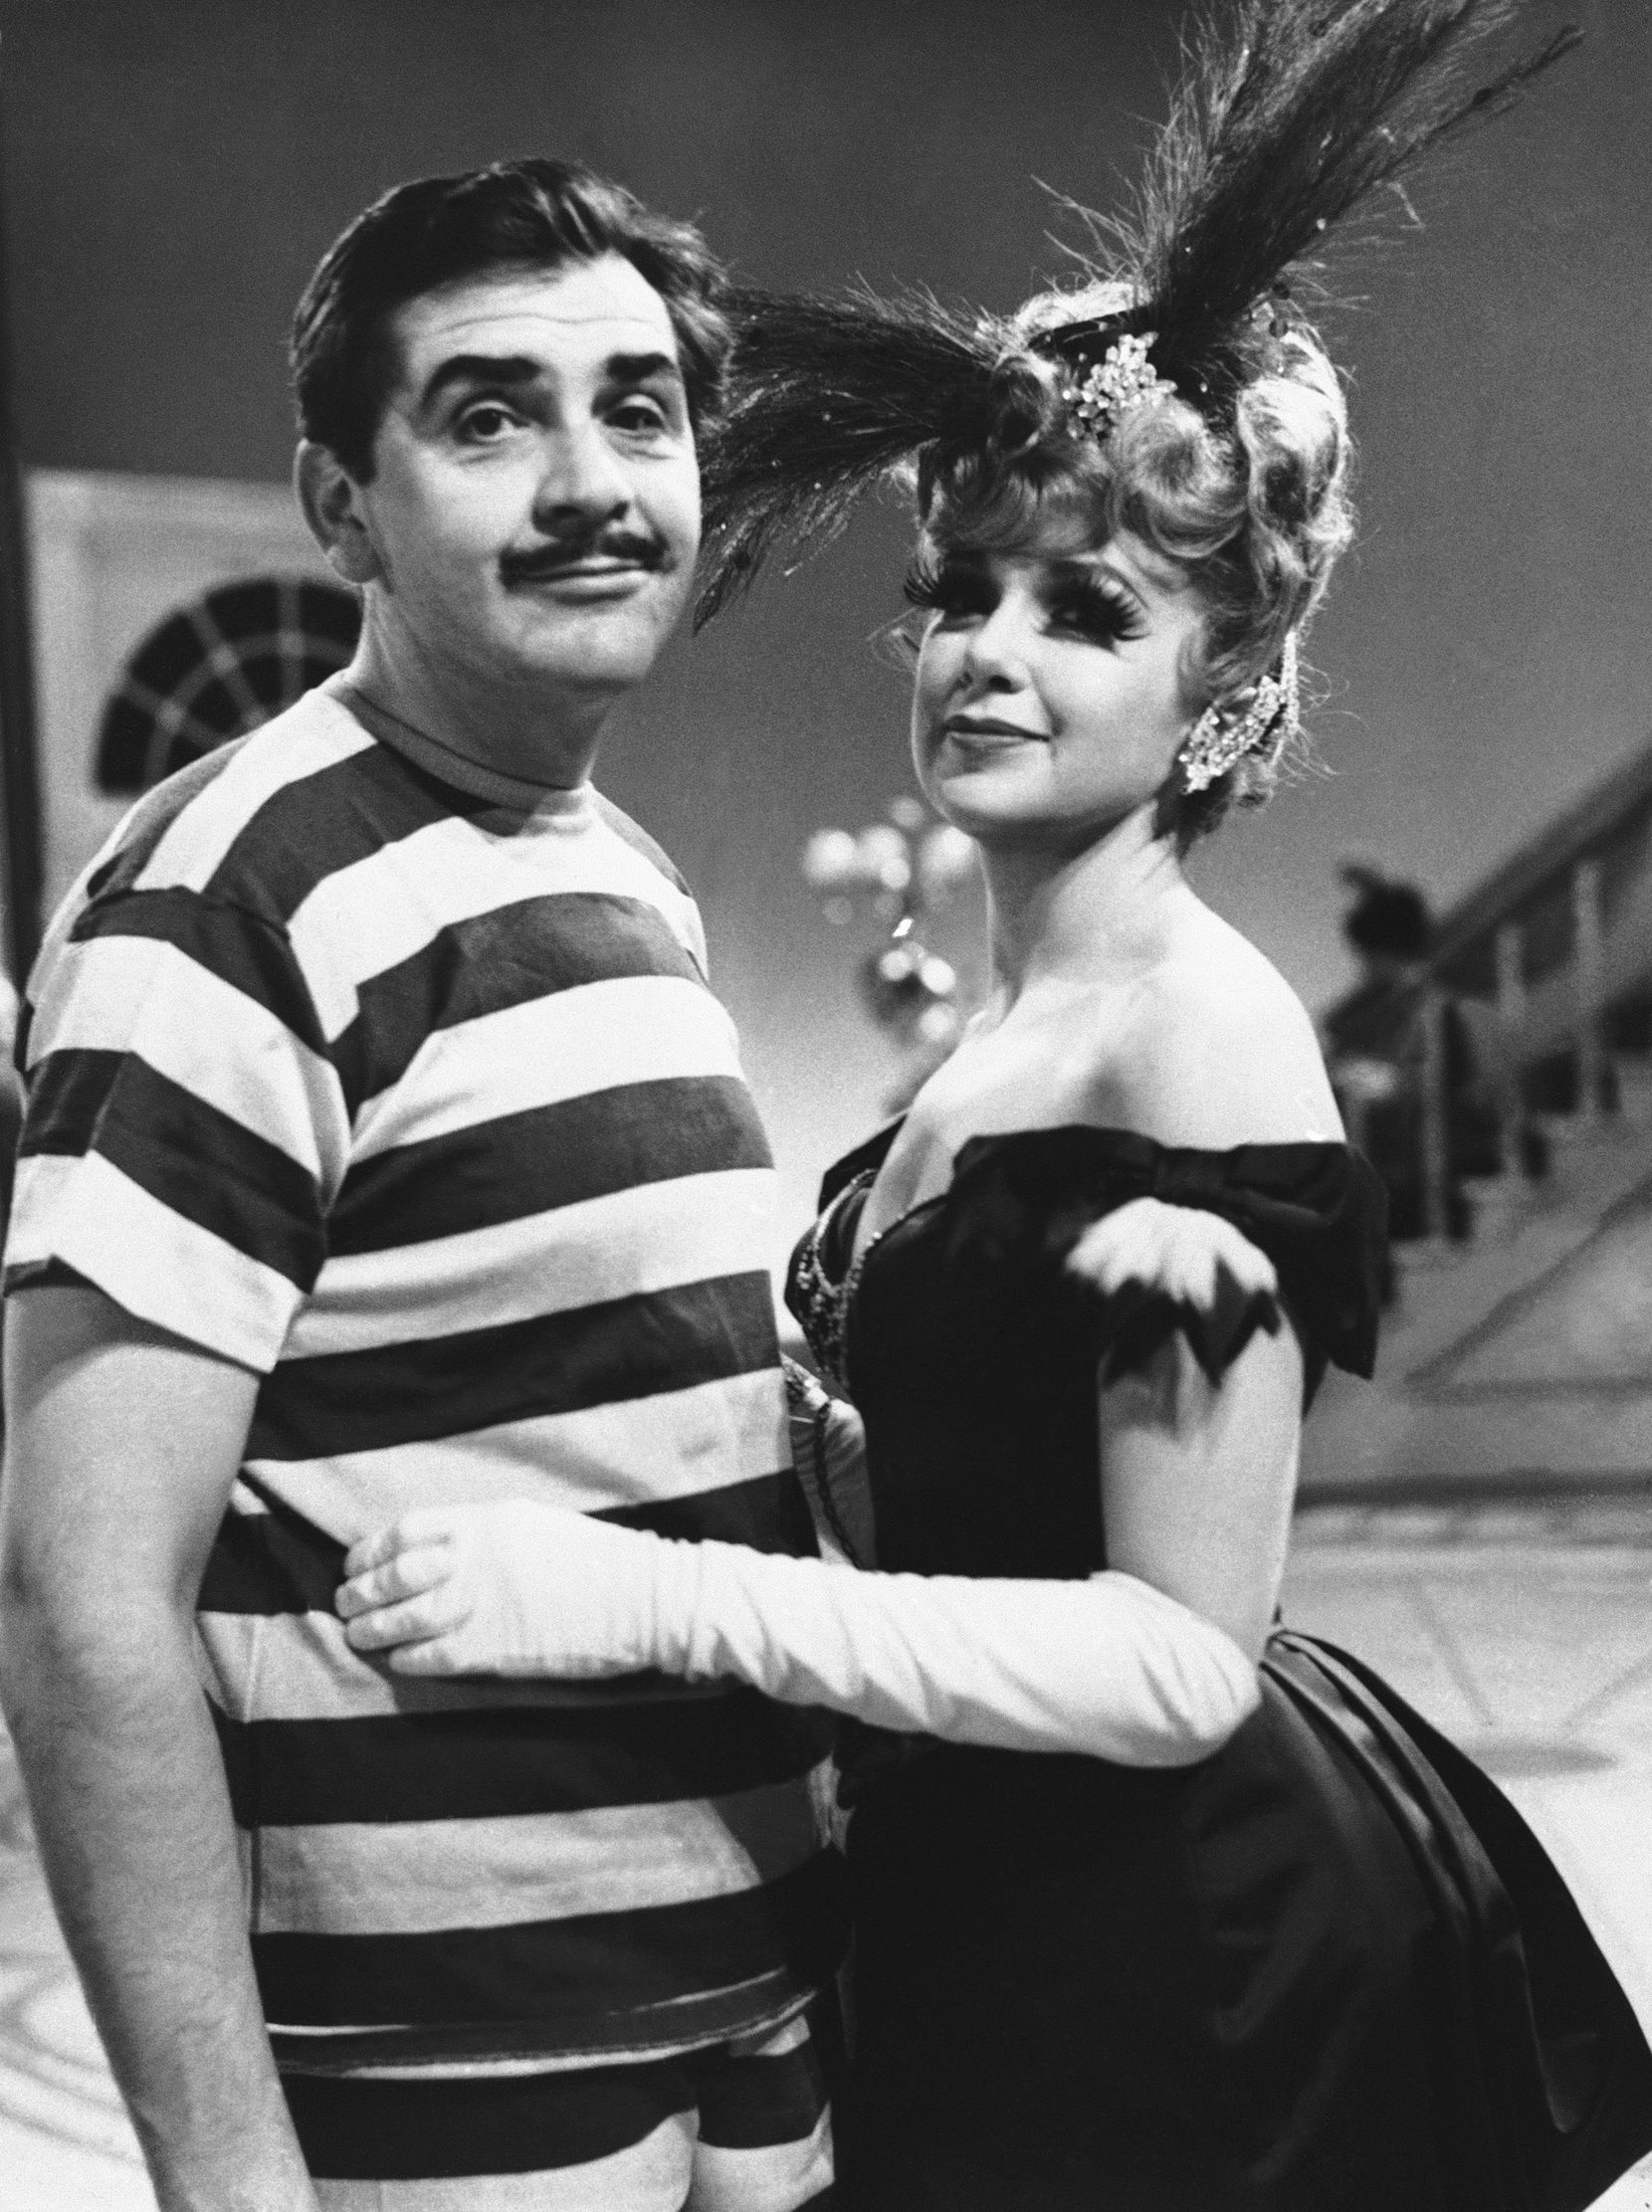 """In this Feb. 22, 1961 file photo, TV comedian Ernie Kovacs, left, and Edie Adams, his wife, appear on the set of """"Private Eye Private Eye."""" Kovacs once said, """"Television is a medium because it is neither rare nor well done."""""""